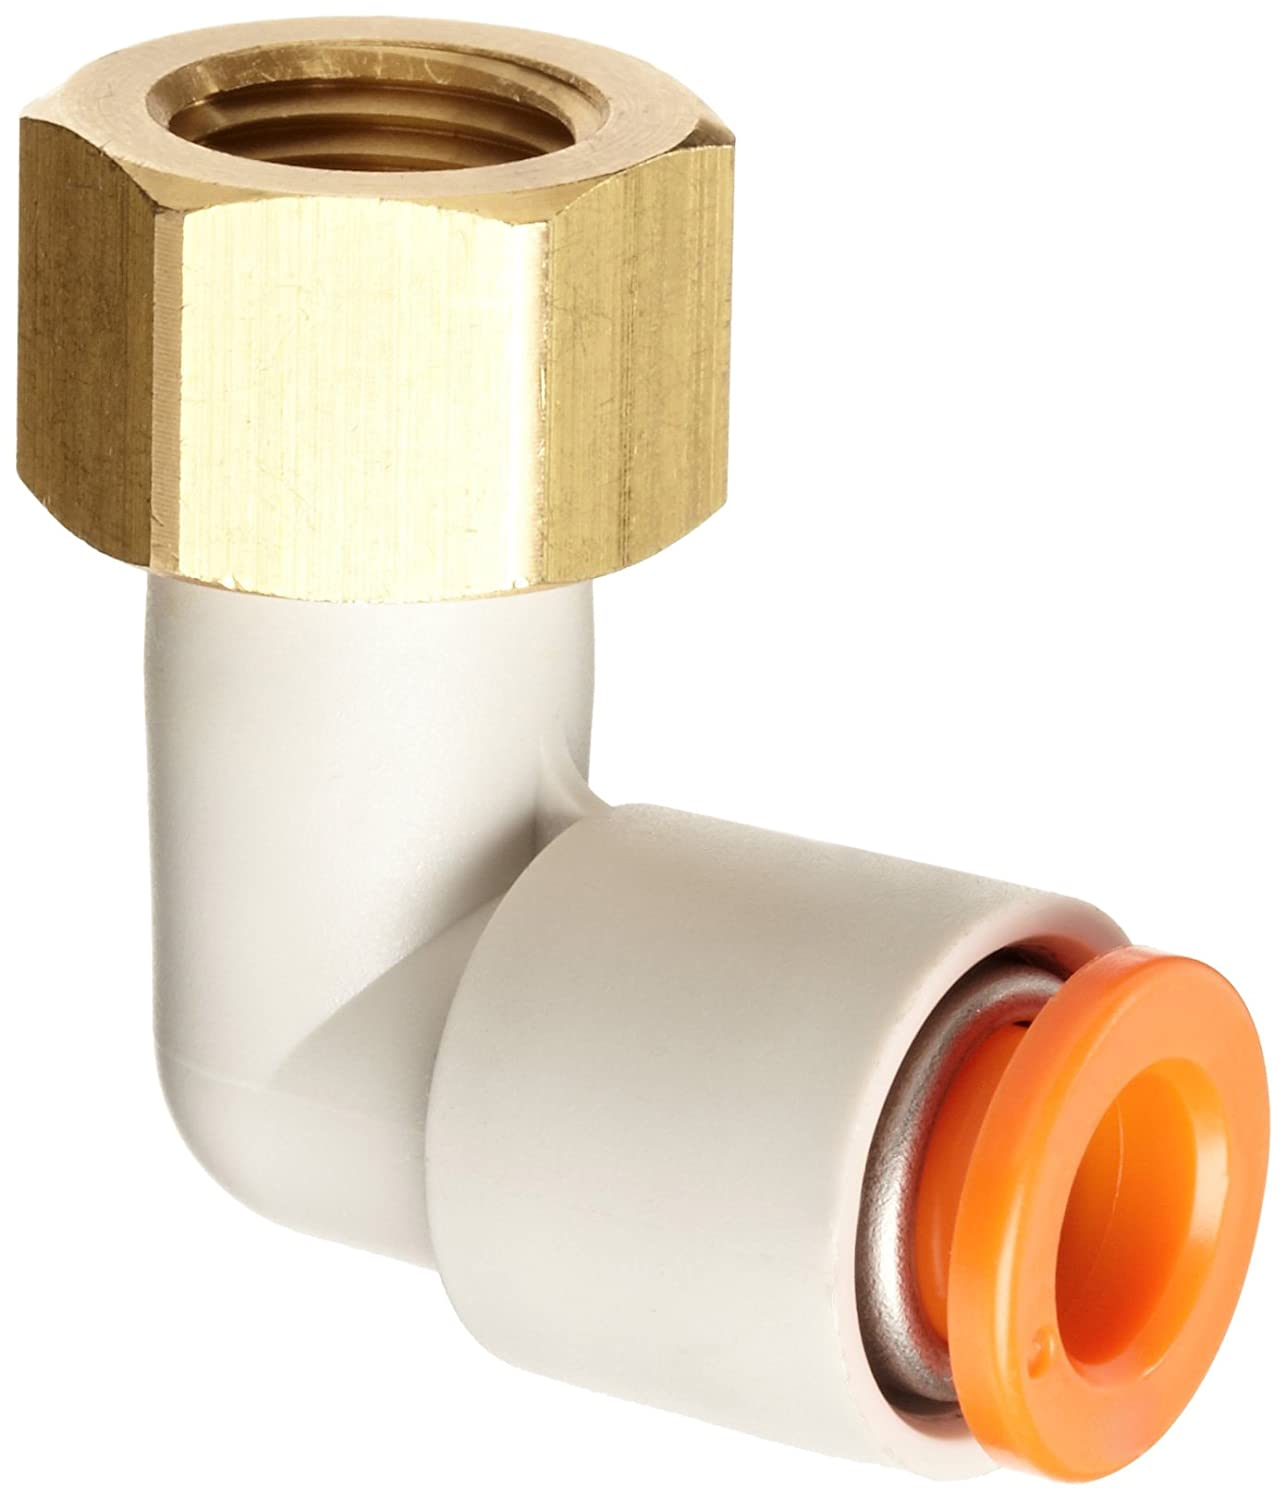 90 Degree Elbow 1//4 Tube OD x 10-32 UNF Male SMC KQ2L07-32A PBT /& Brass Push-to-Connect Tube Fitting